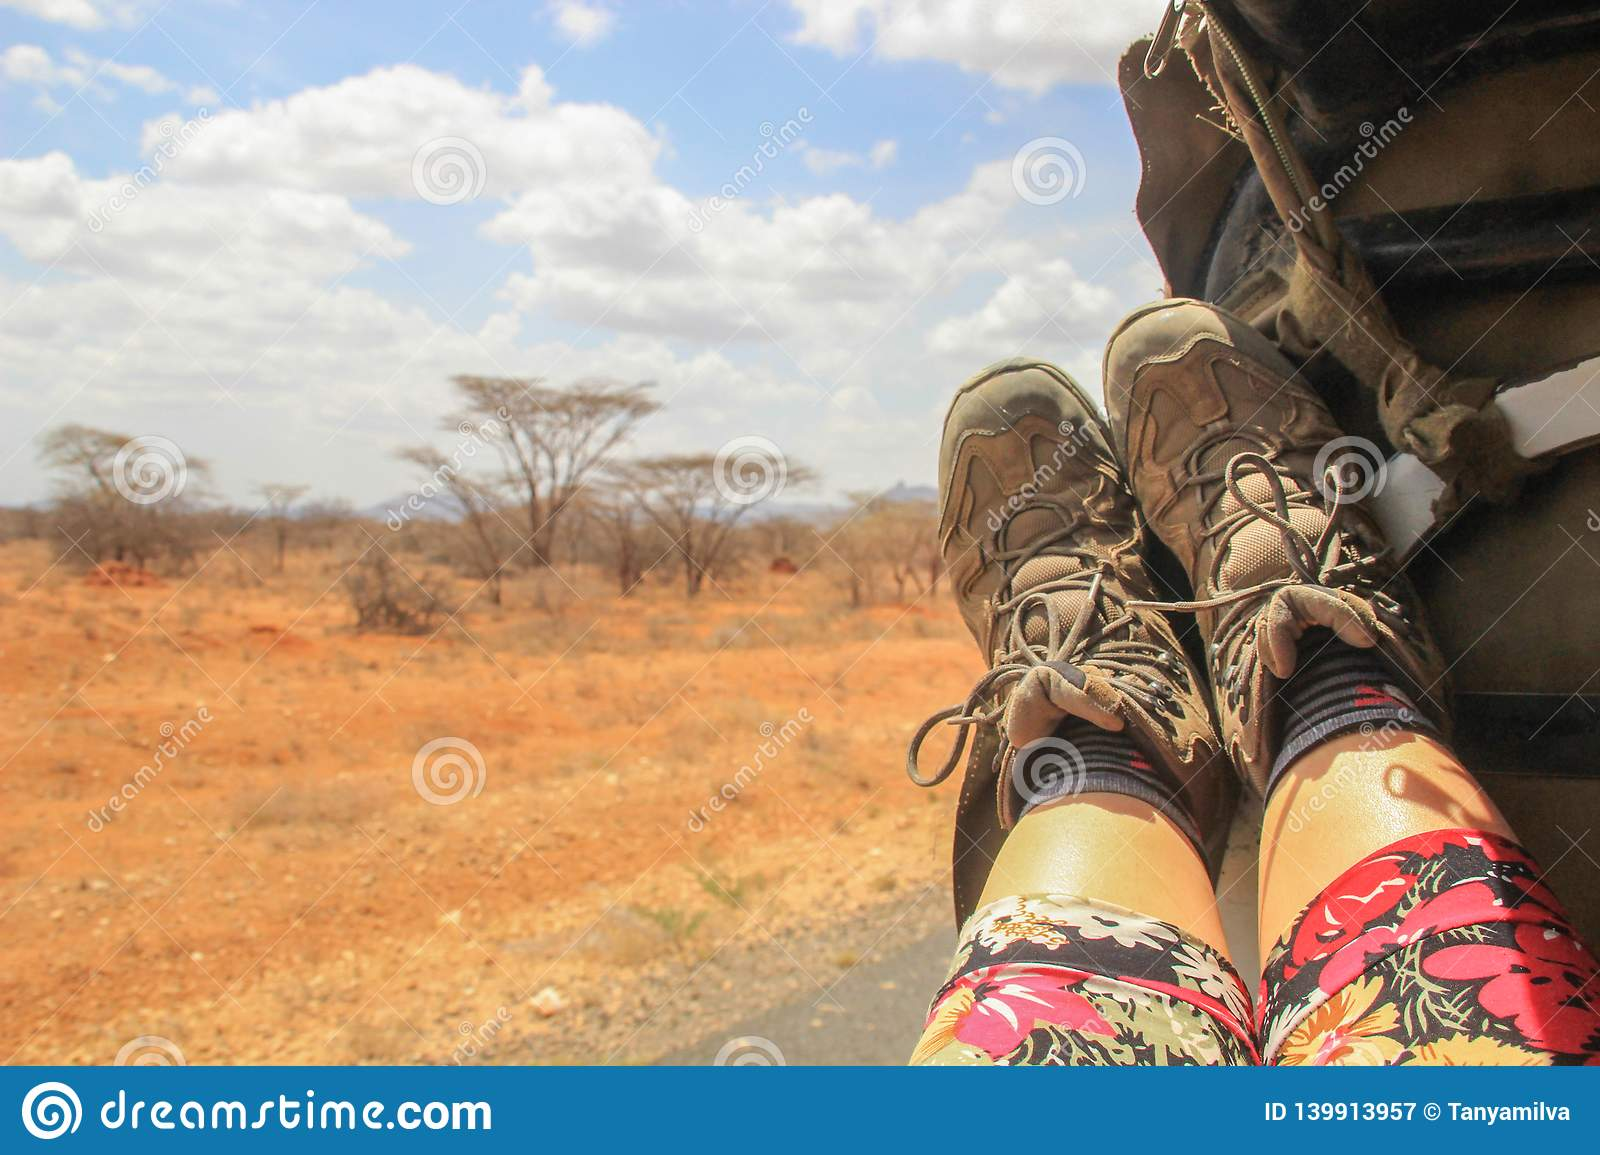 Women`s legs and tourist boots on the background of the African